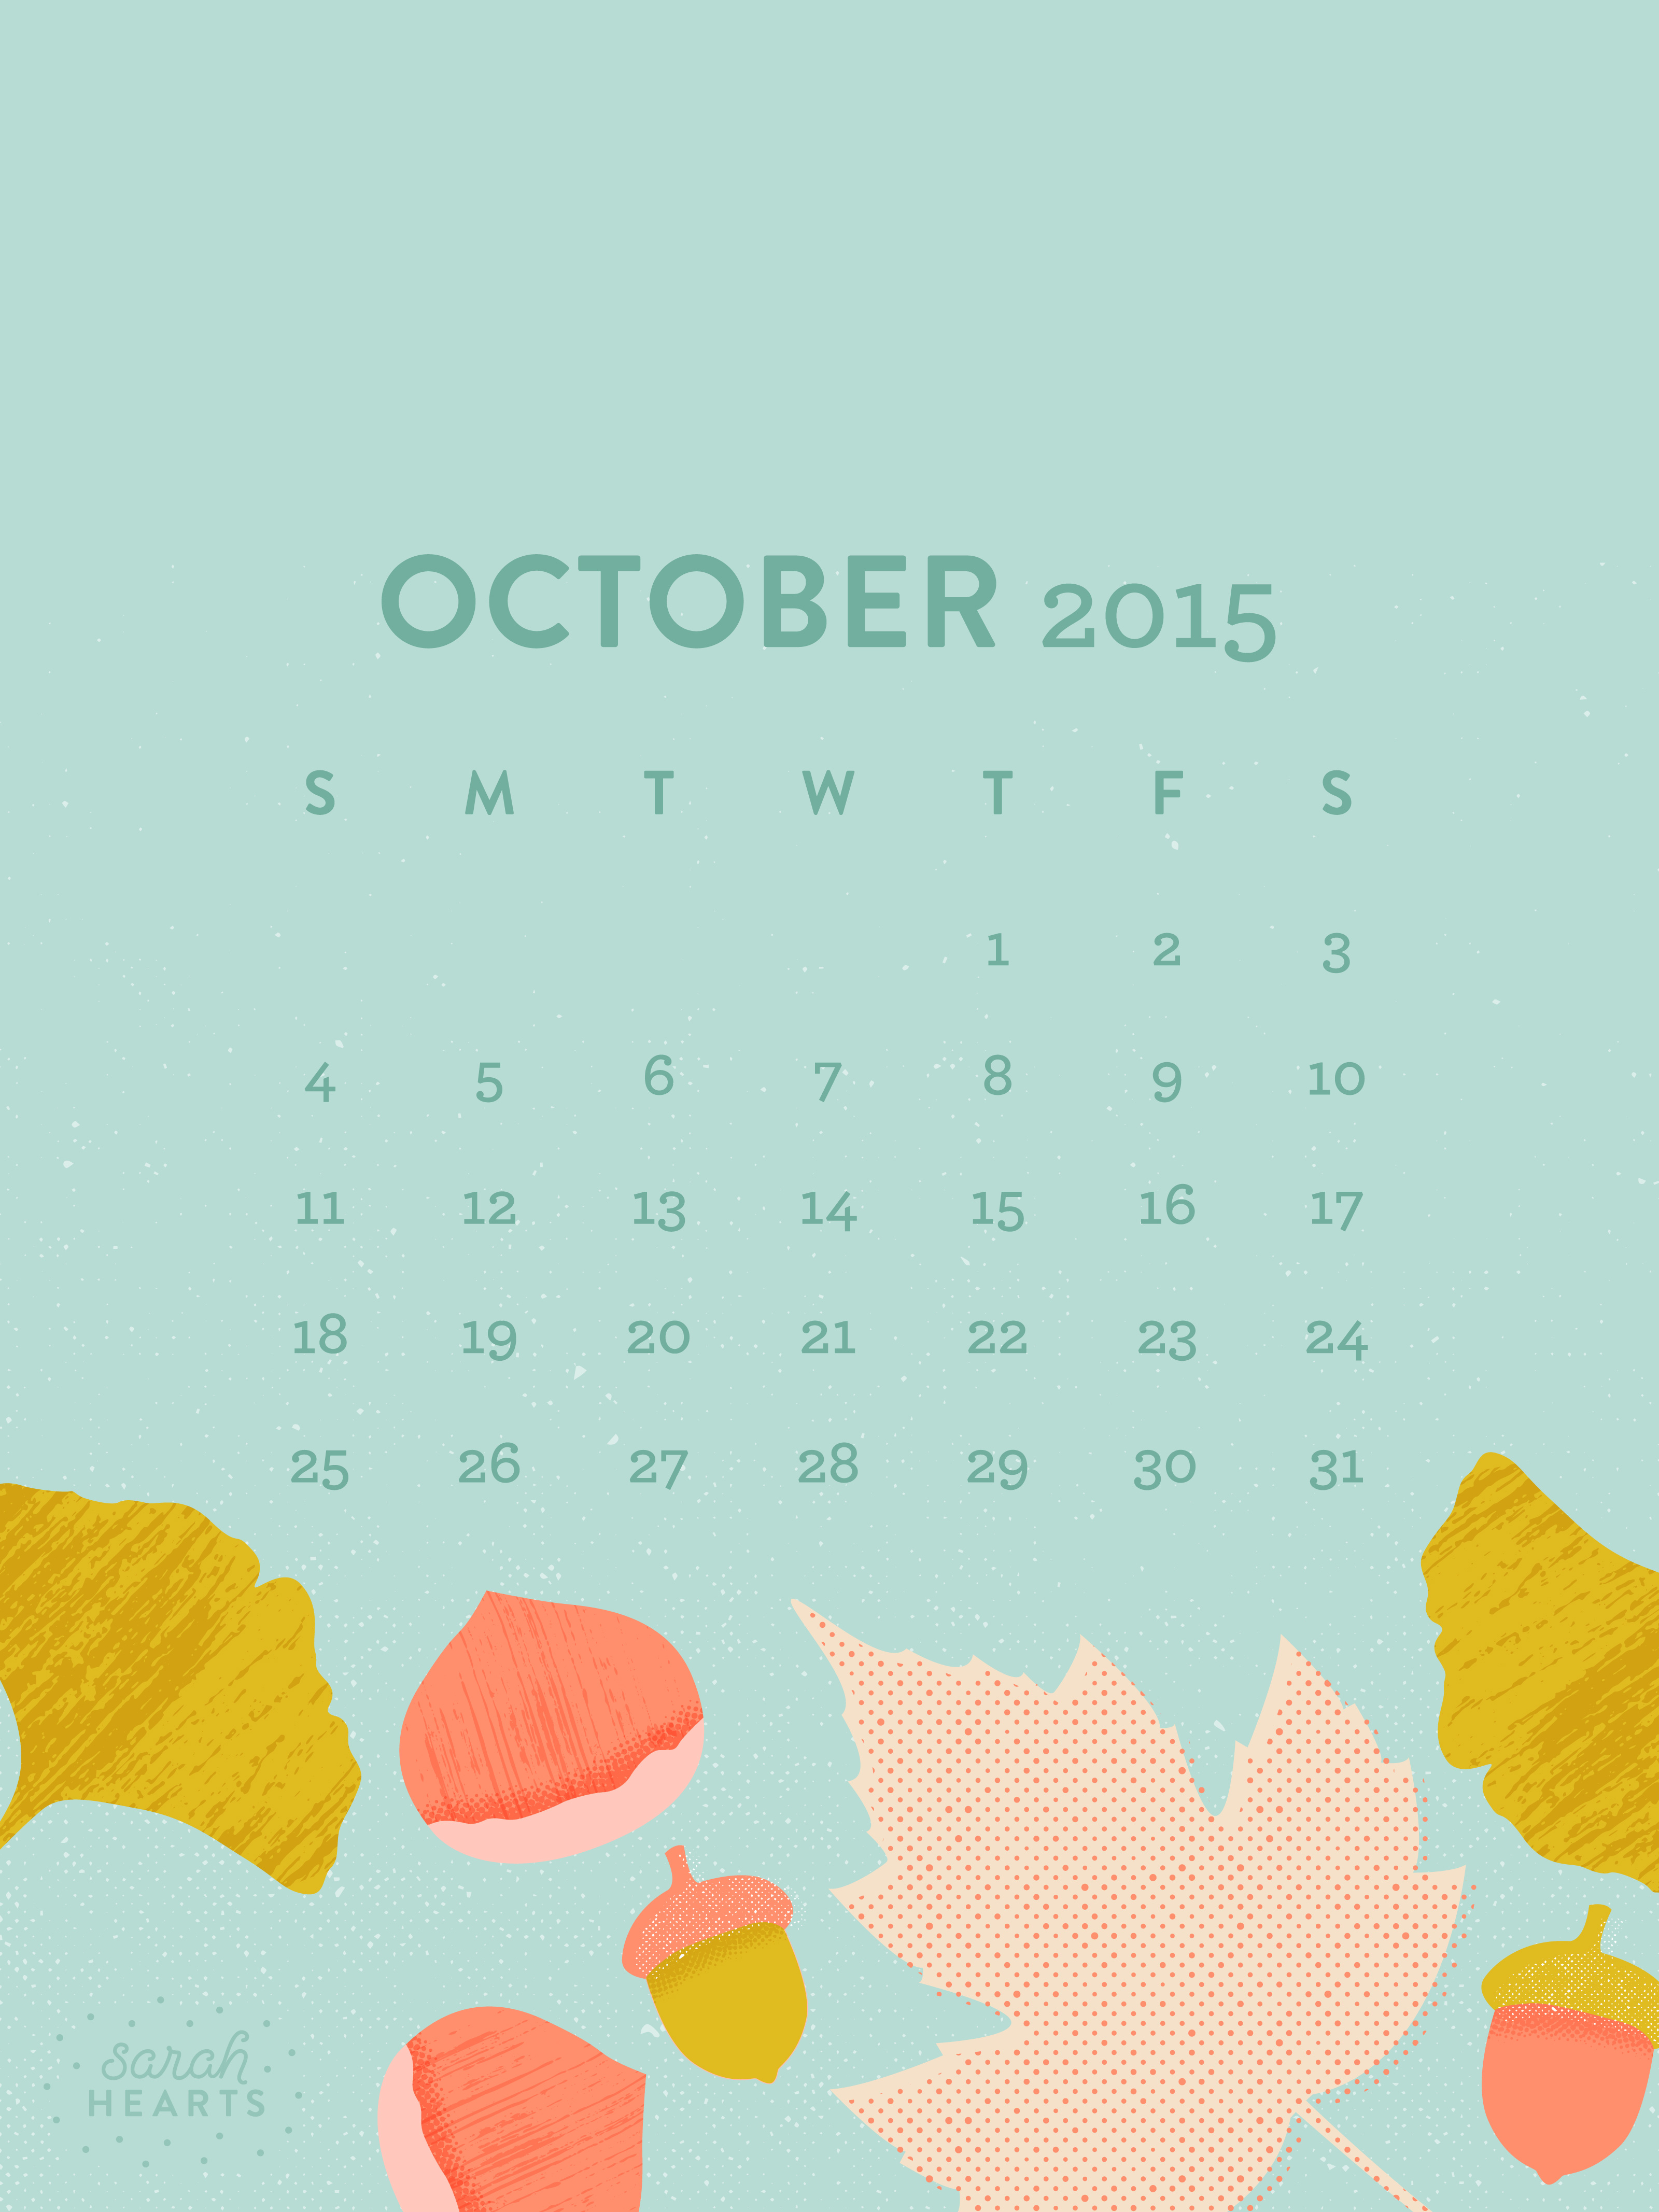 October 2015 Calendar Wallpaper   Sarah Hearts 3200x4267